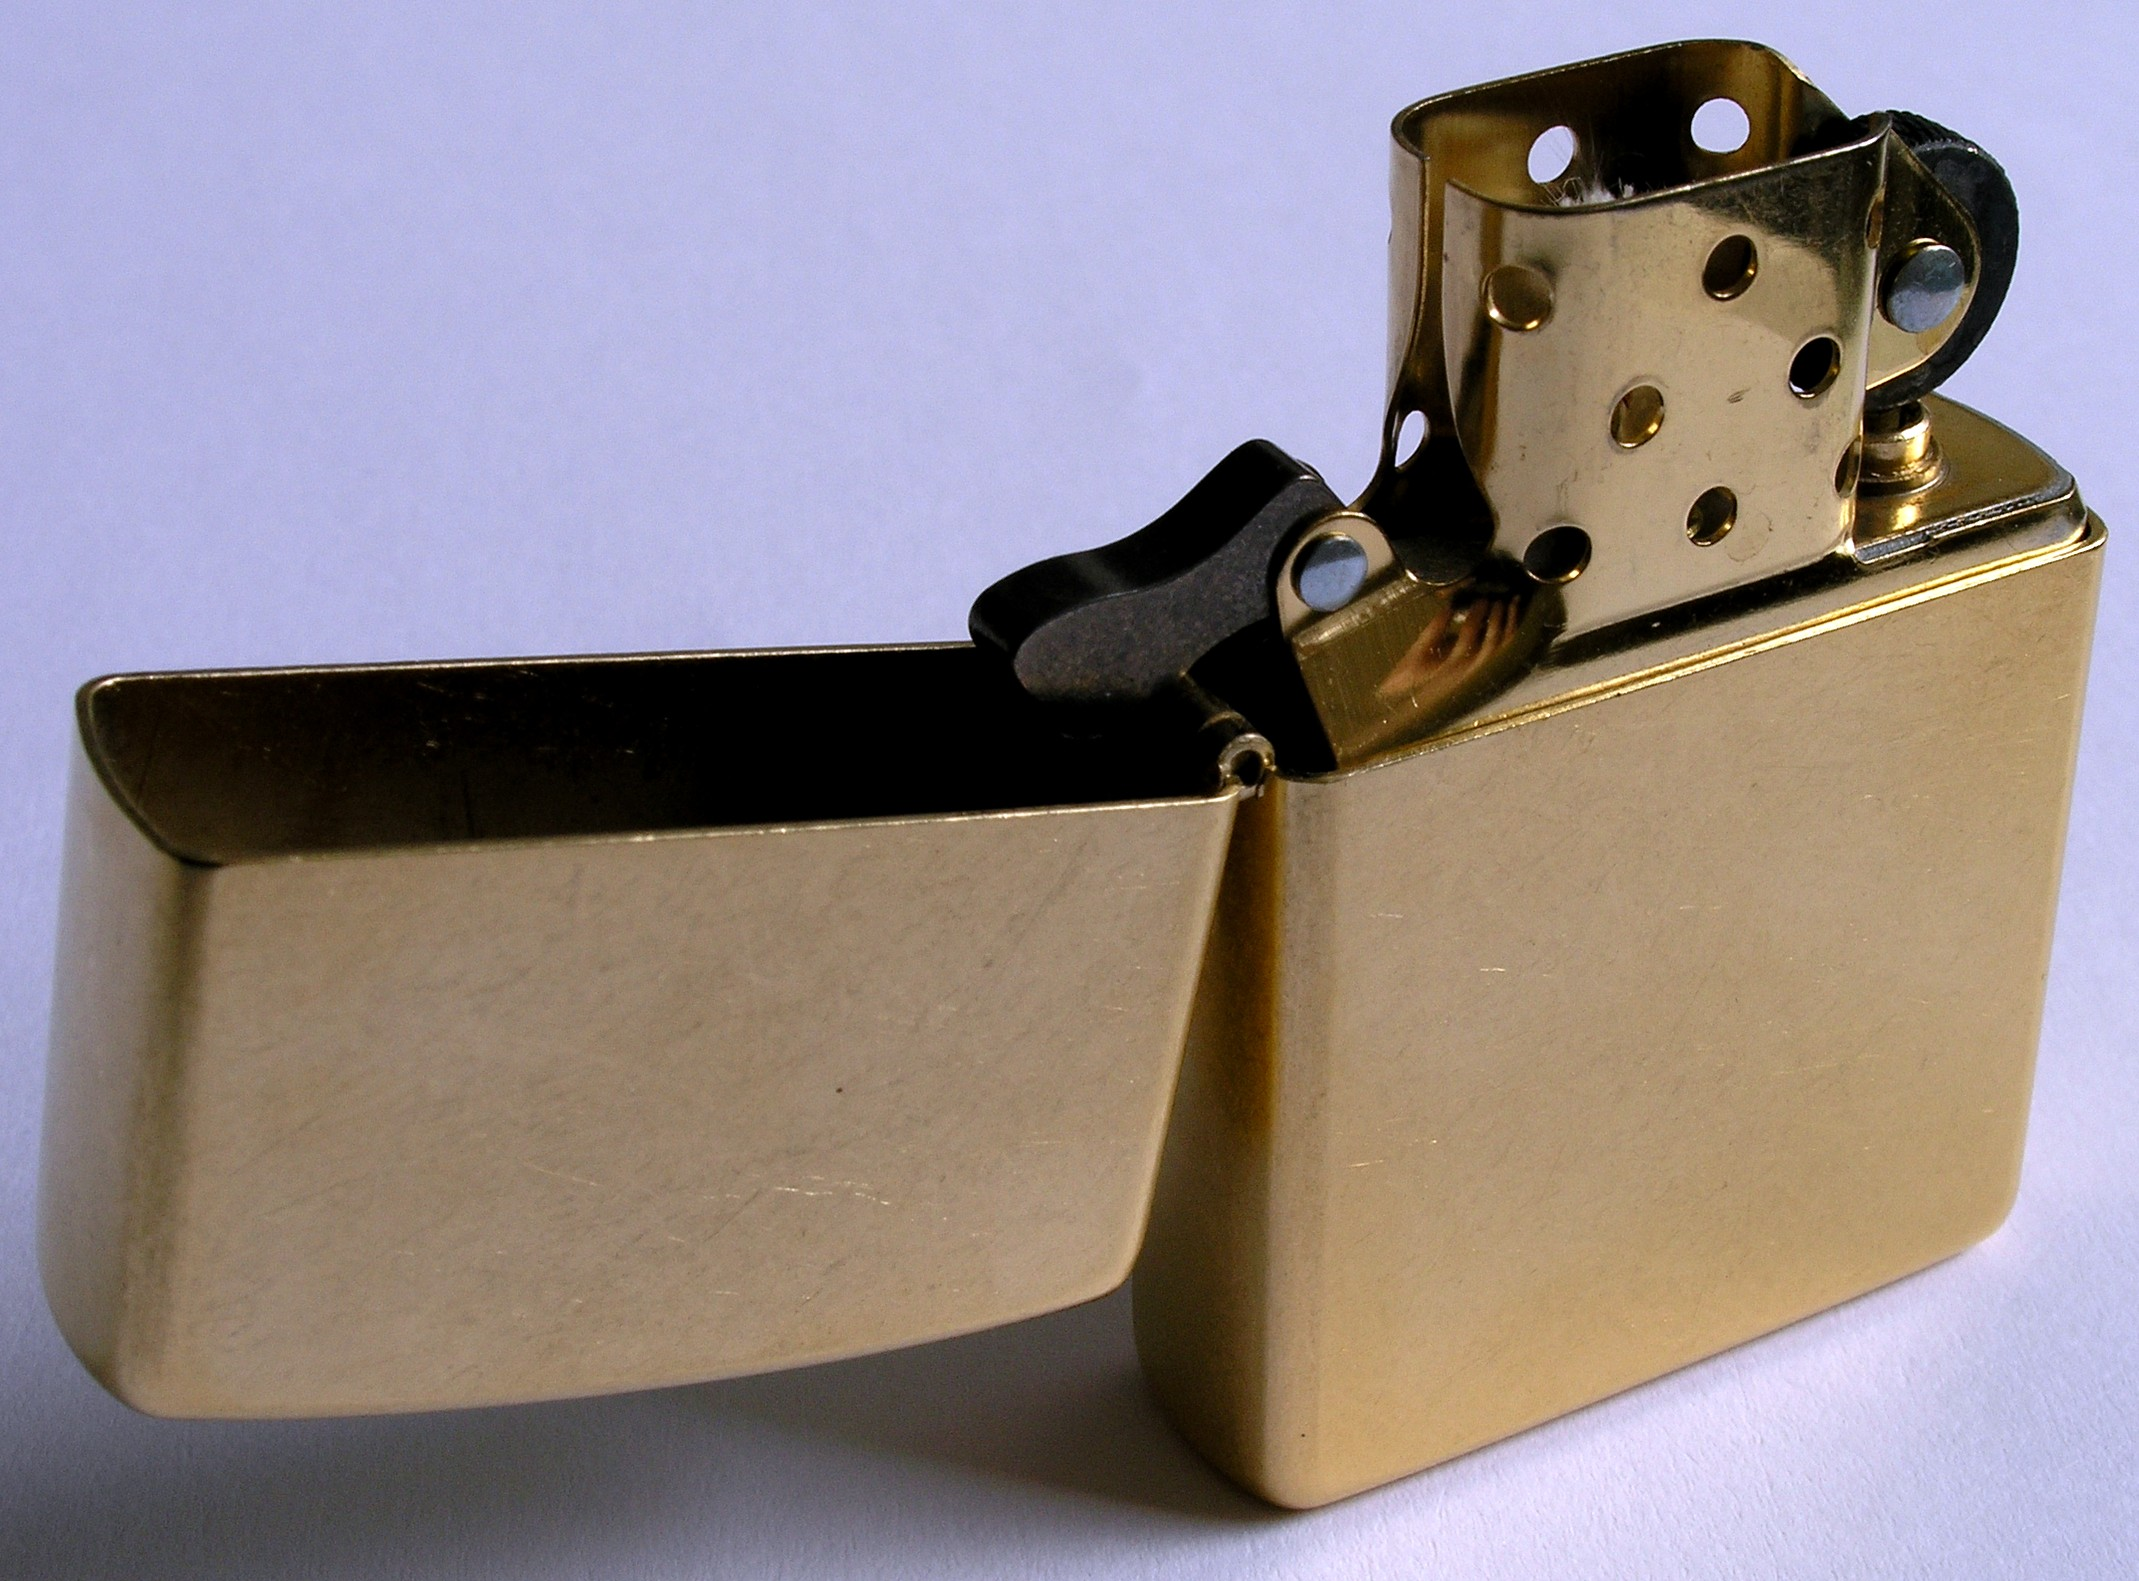 File:Zippo-Lighter Gold-Dust w brass-insert.jpg - Wikimedia Commons